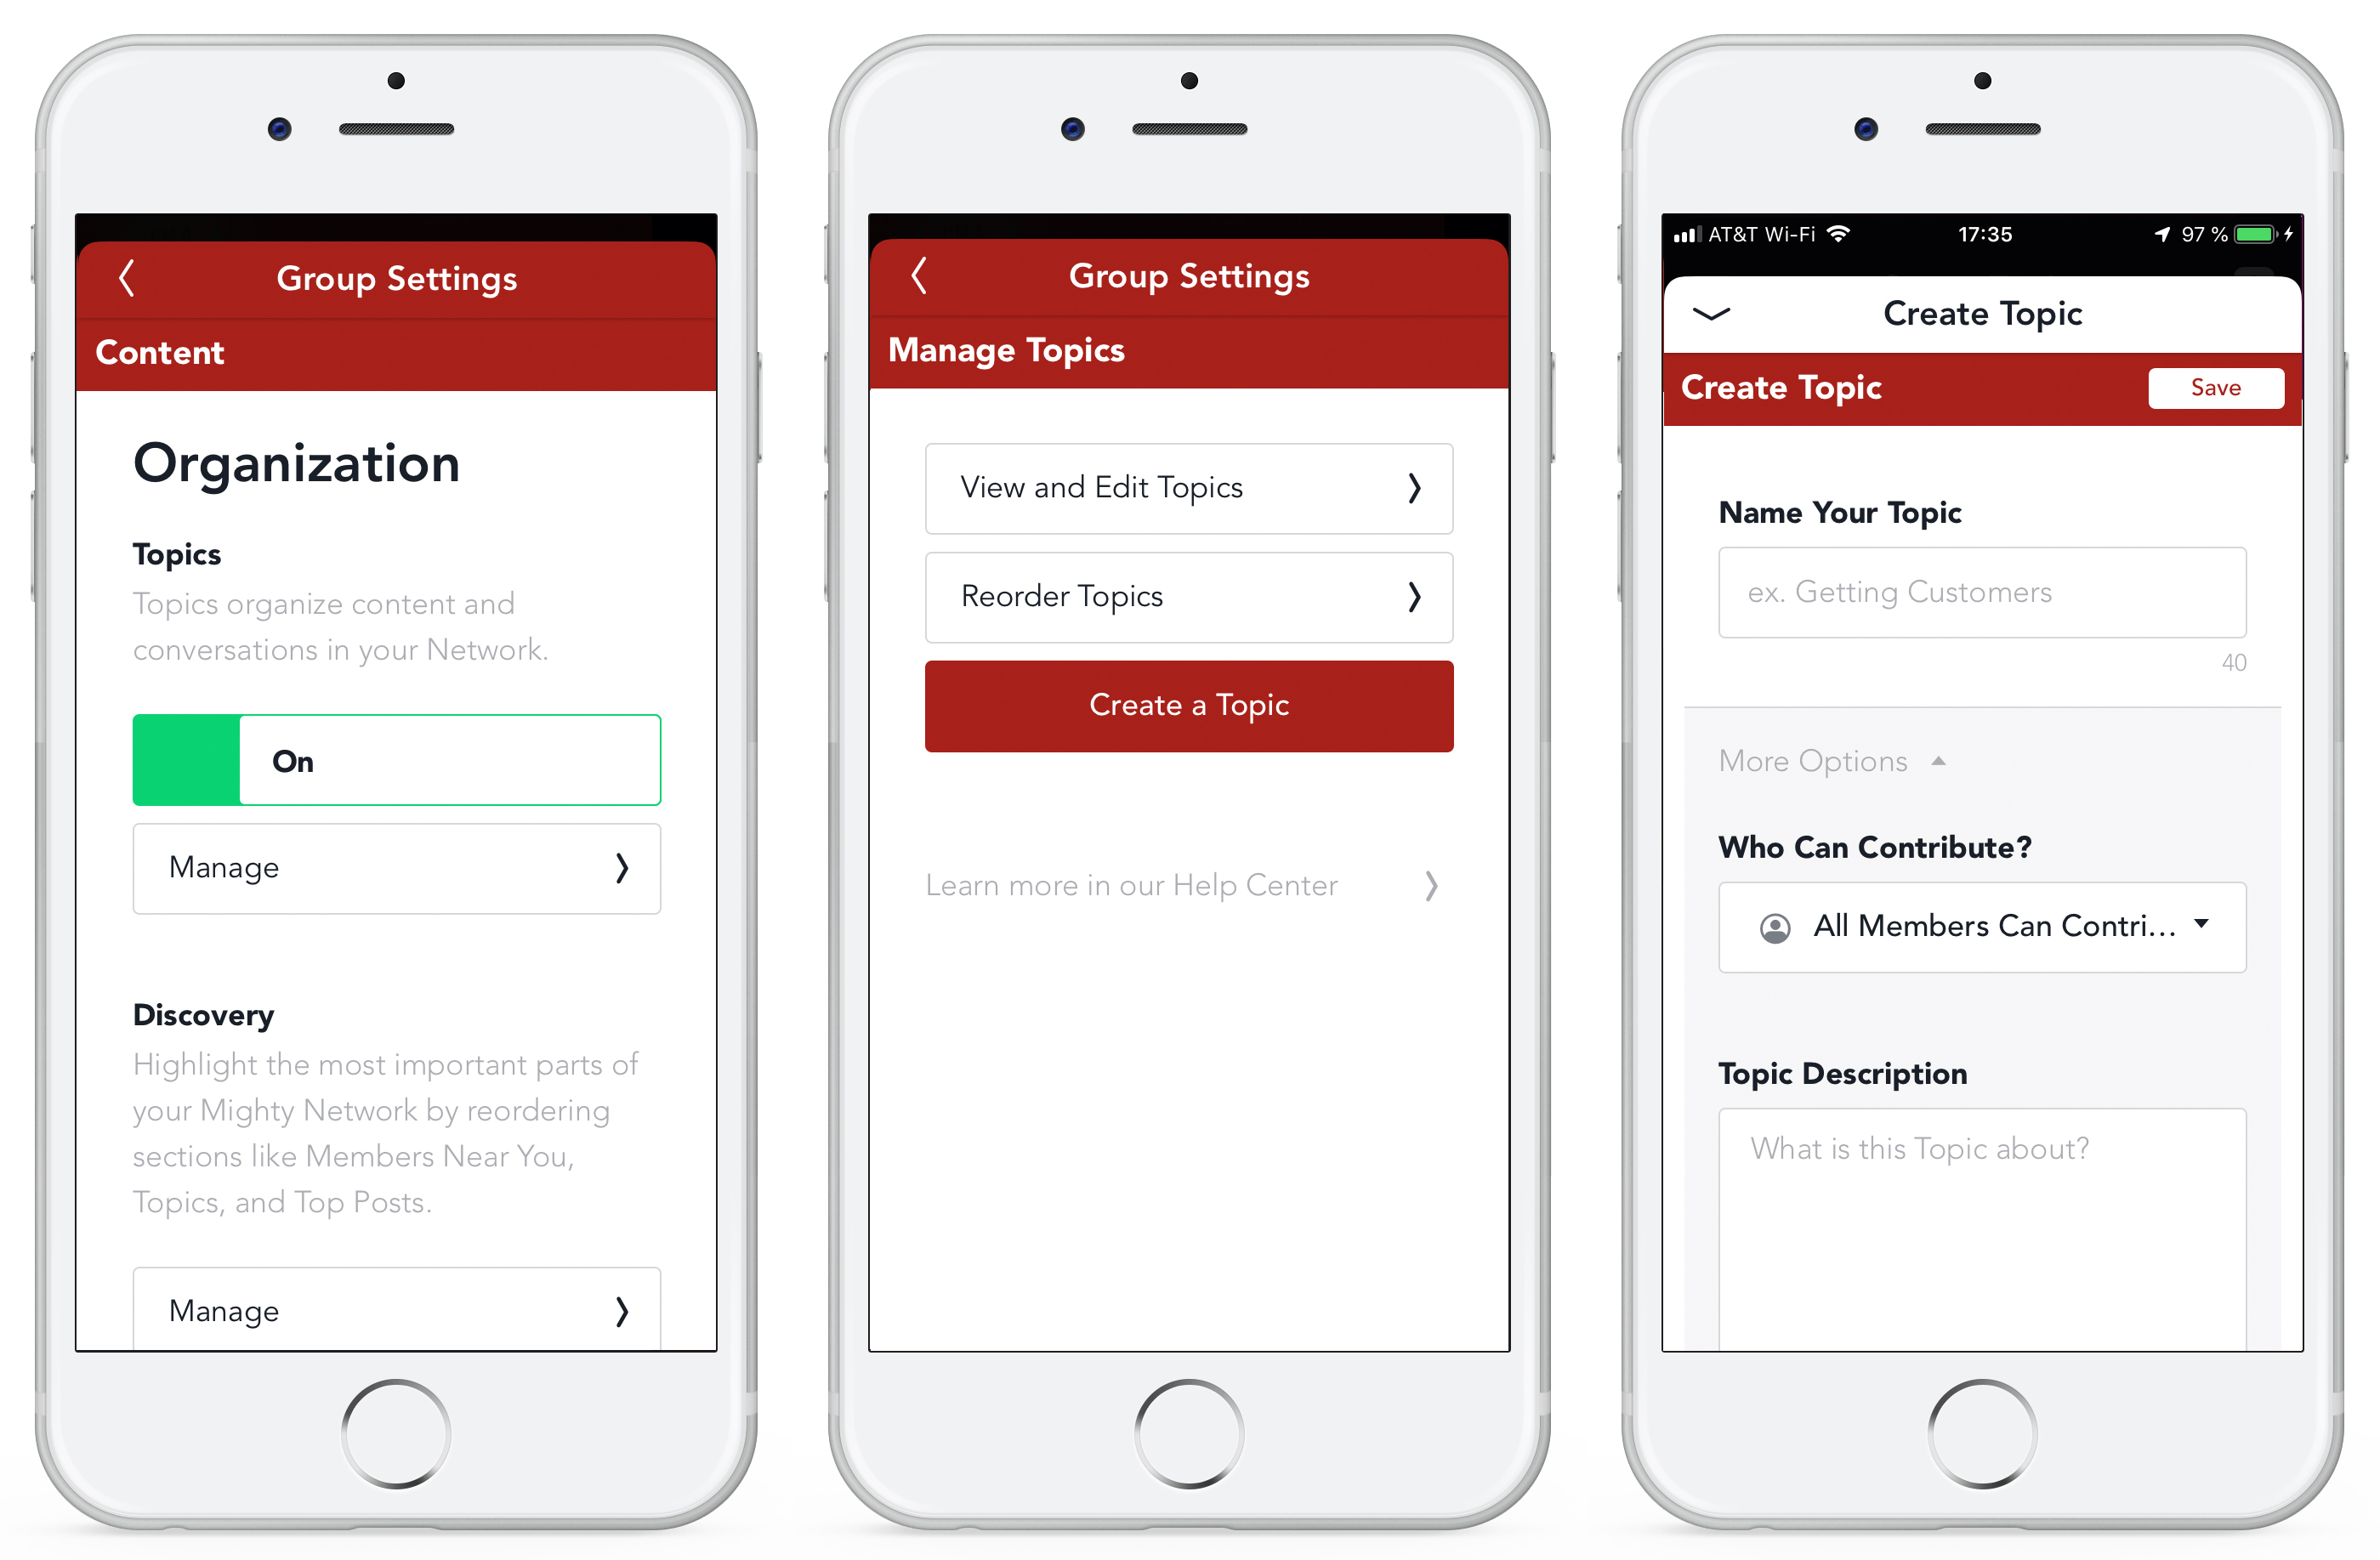 topicssettings.jpg